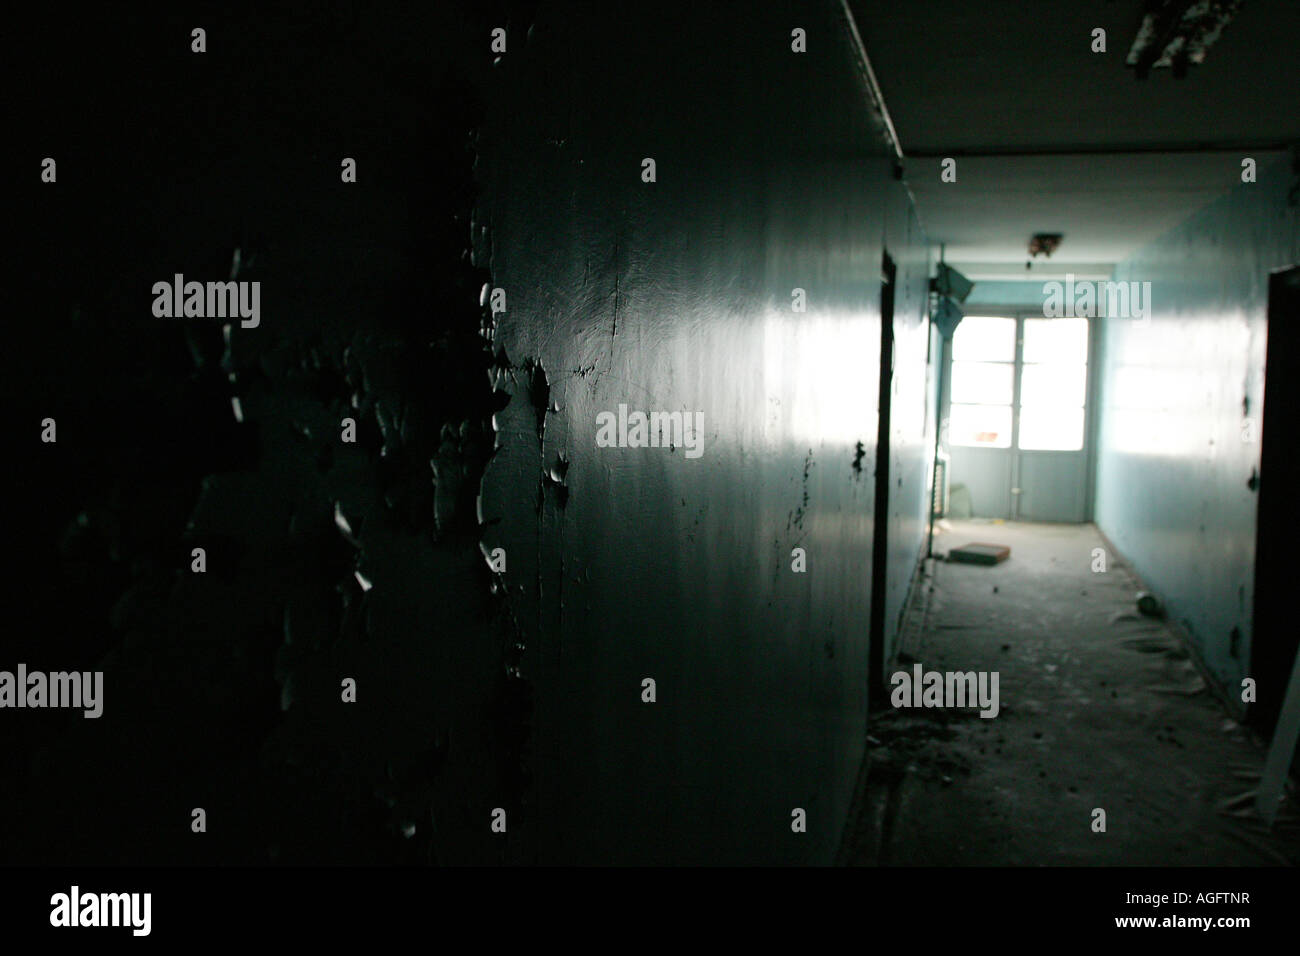 abandoned apartment in chernobyl fallout zone in town of prypiat - Stock Image